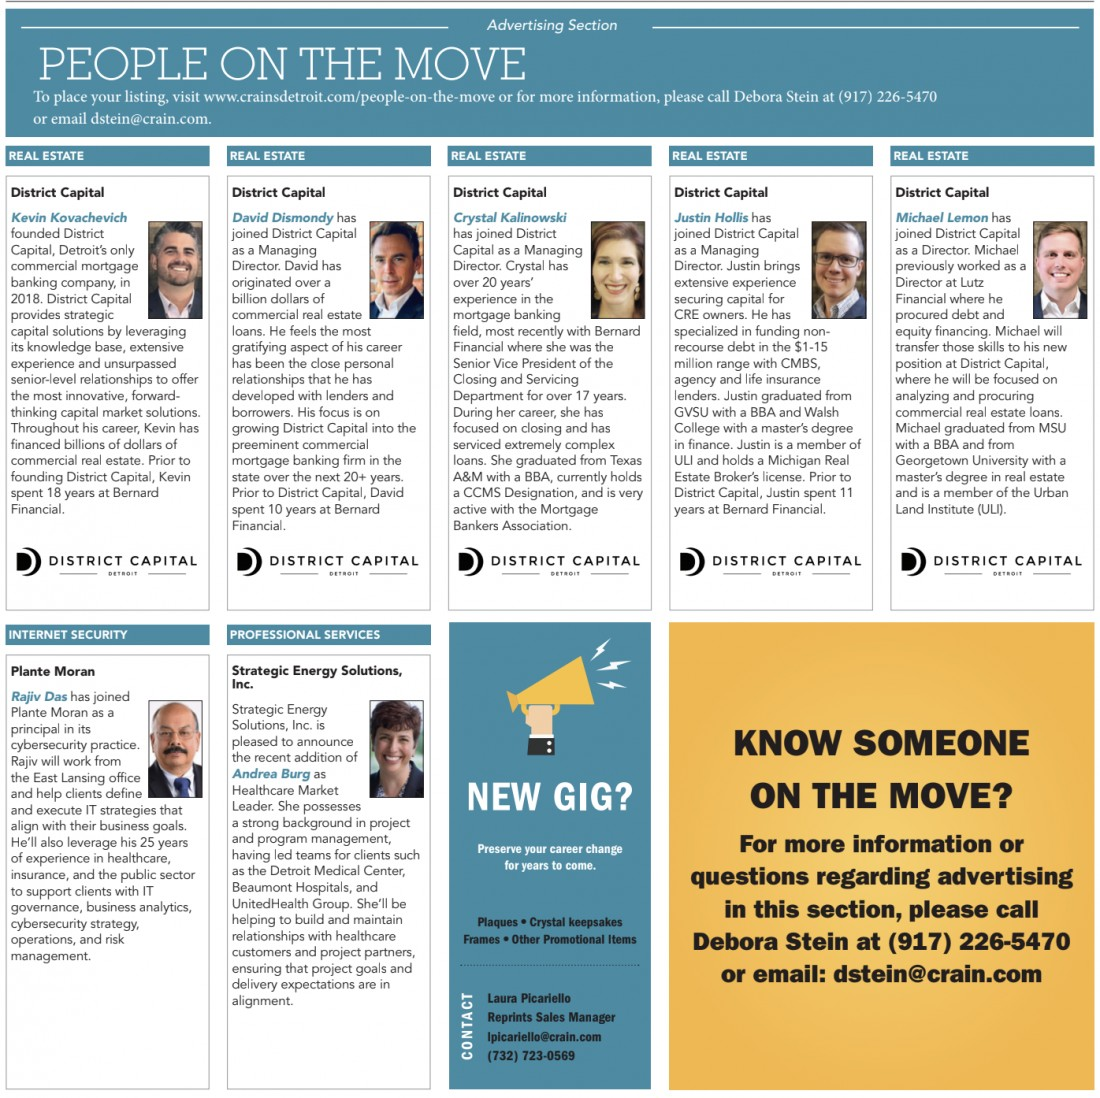 Crain's Detroit Business 'People on the Move' - Blog | District Capital Detroit - Screen_Shot_2019-05-02_at_9